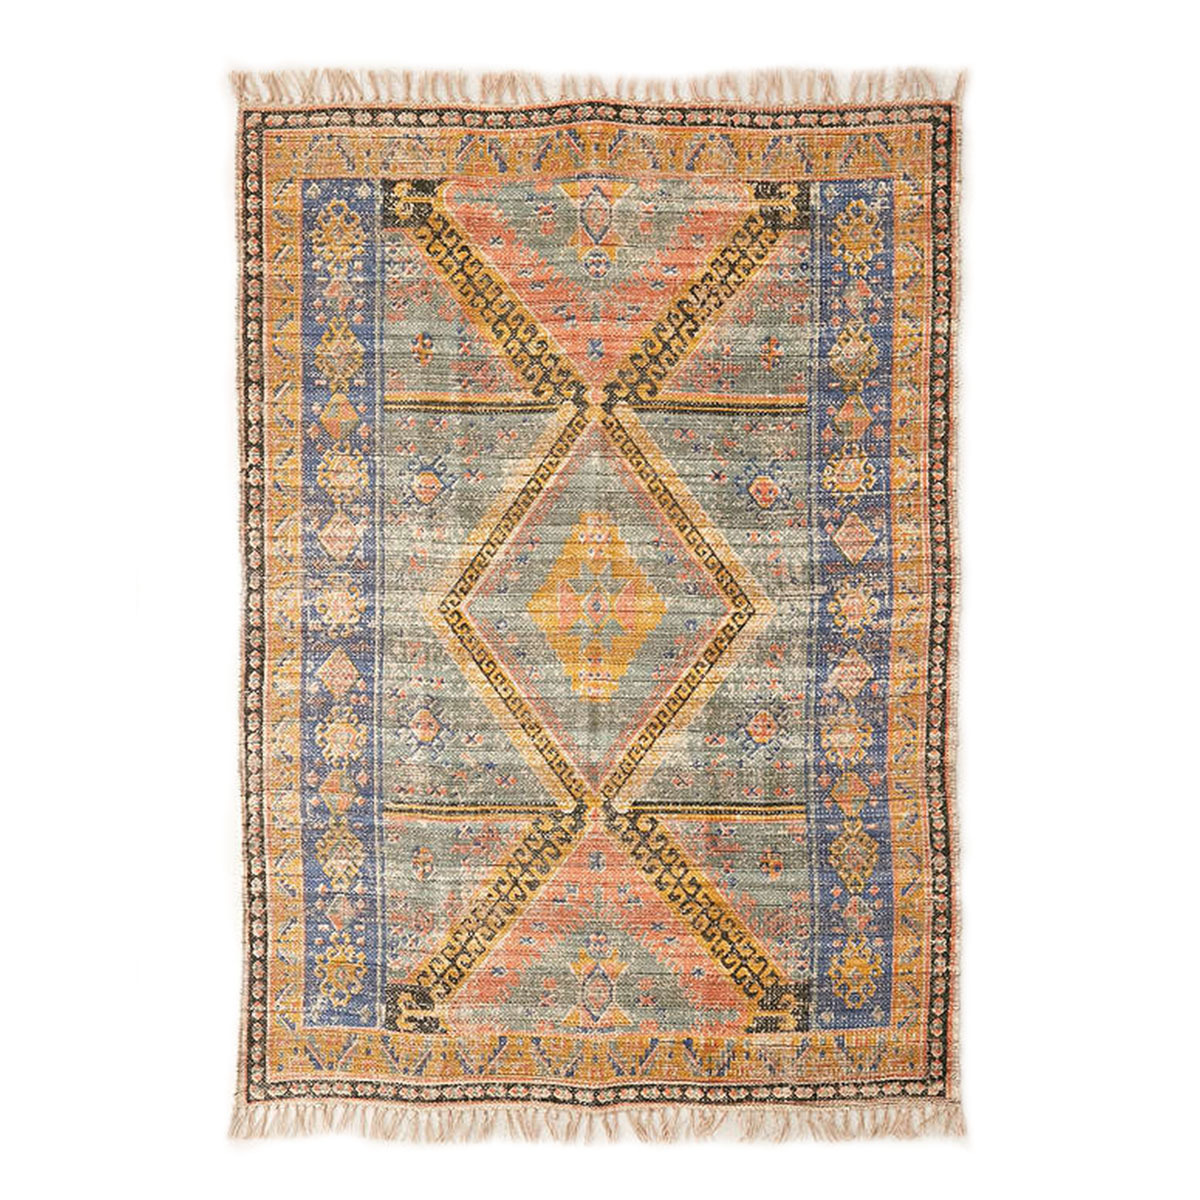 Elclectic overdyed rug featuring unique coloring and trendy fringe. photo